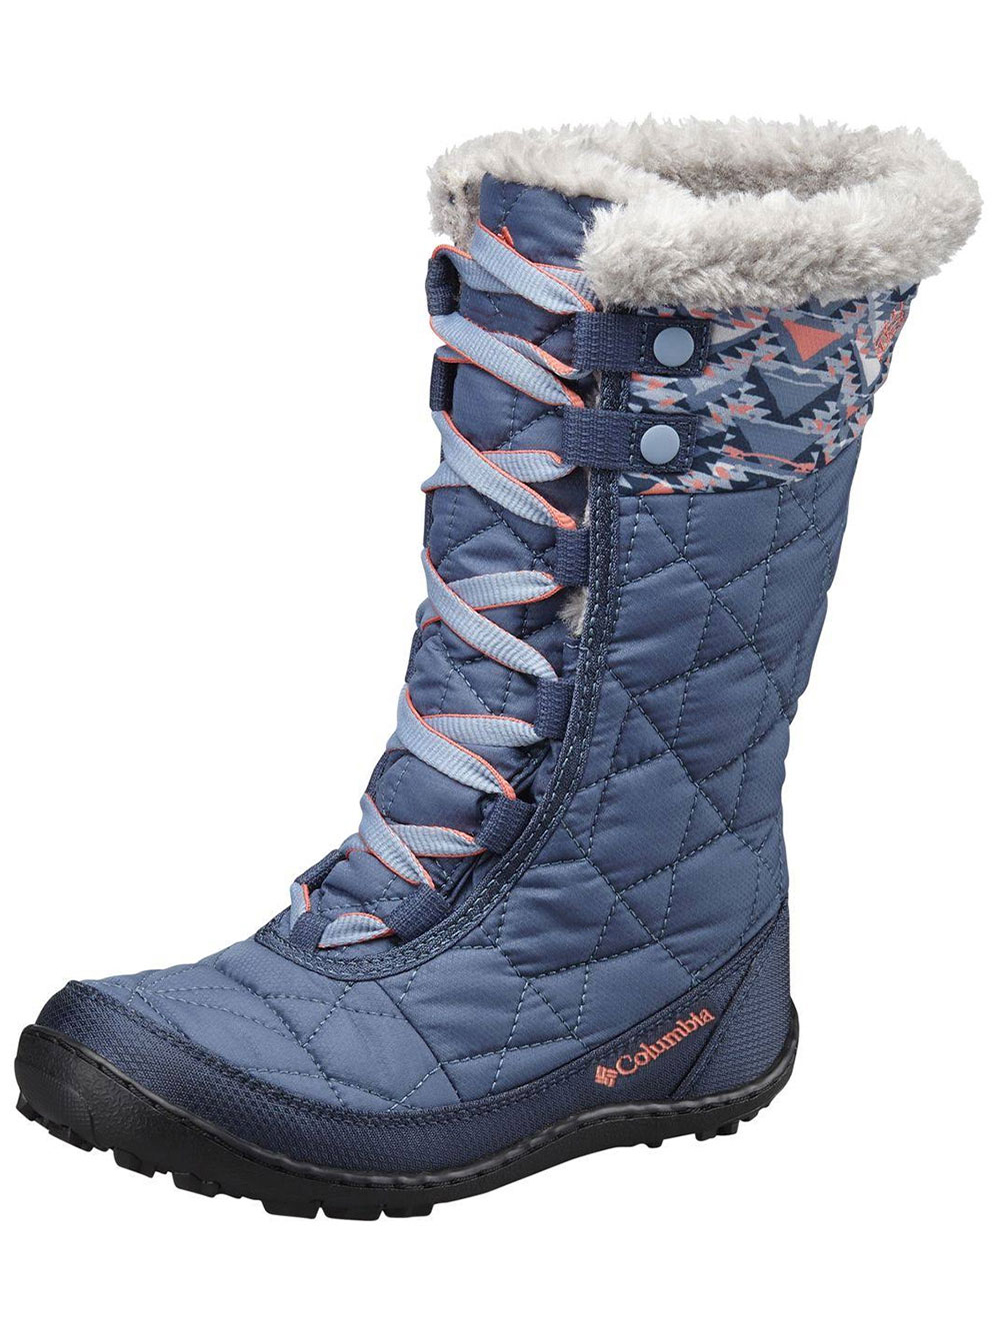 Image of Columbia Girls Minx Mid II Waterproof OmniHeat Boots Youth Sizes 1  7  dark mountain 6 youth